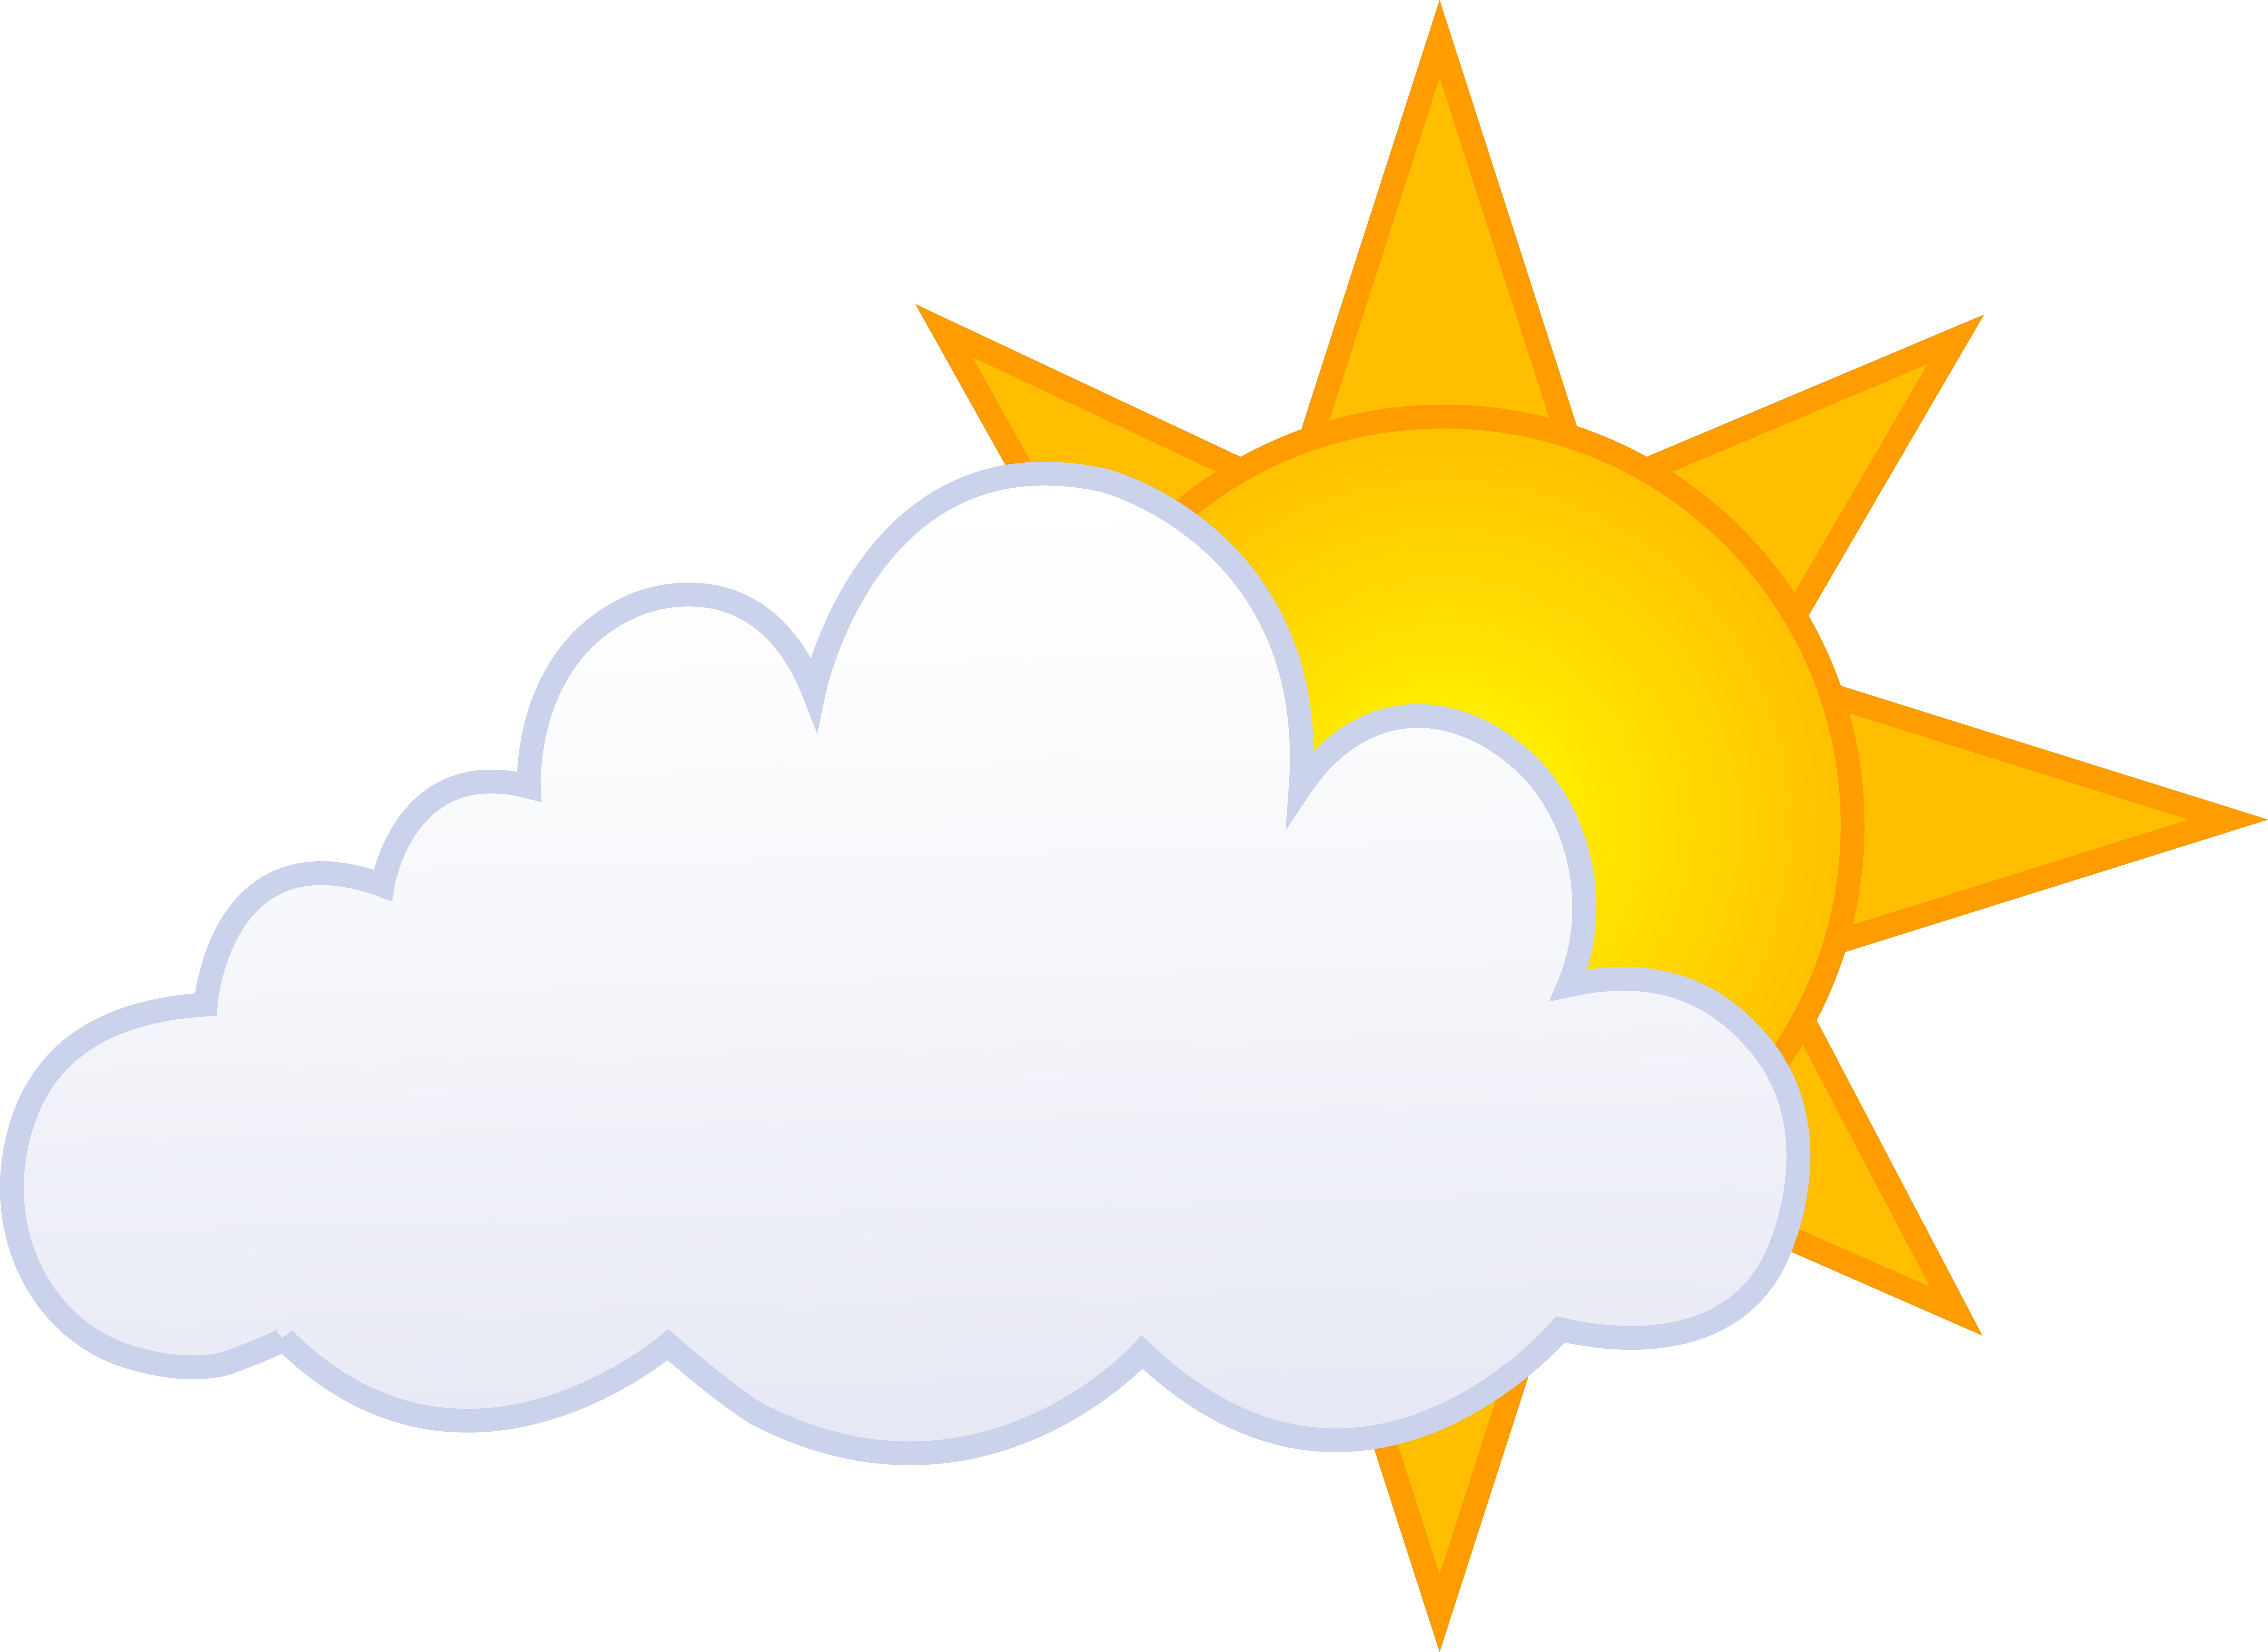 Cloudy clipart dull. Sun and clouds drawing